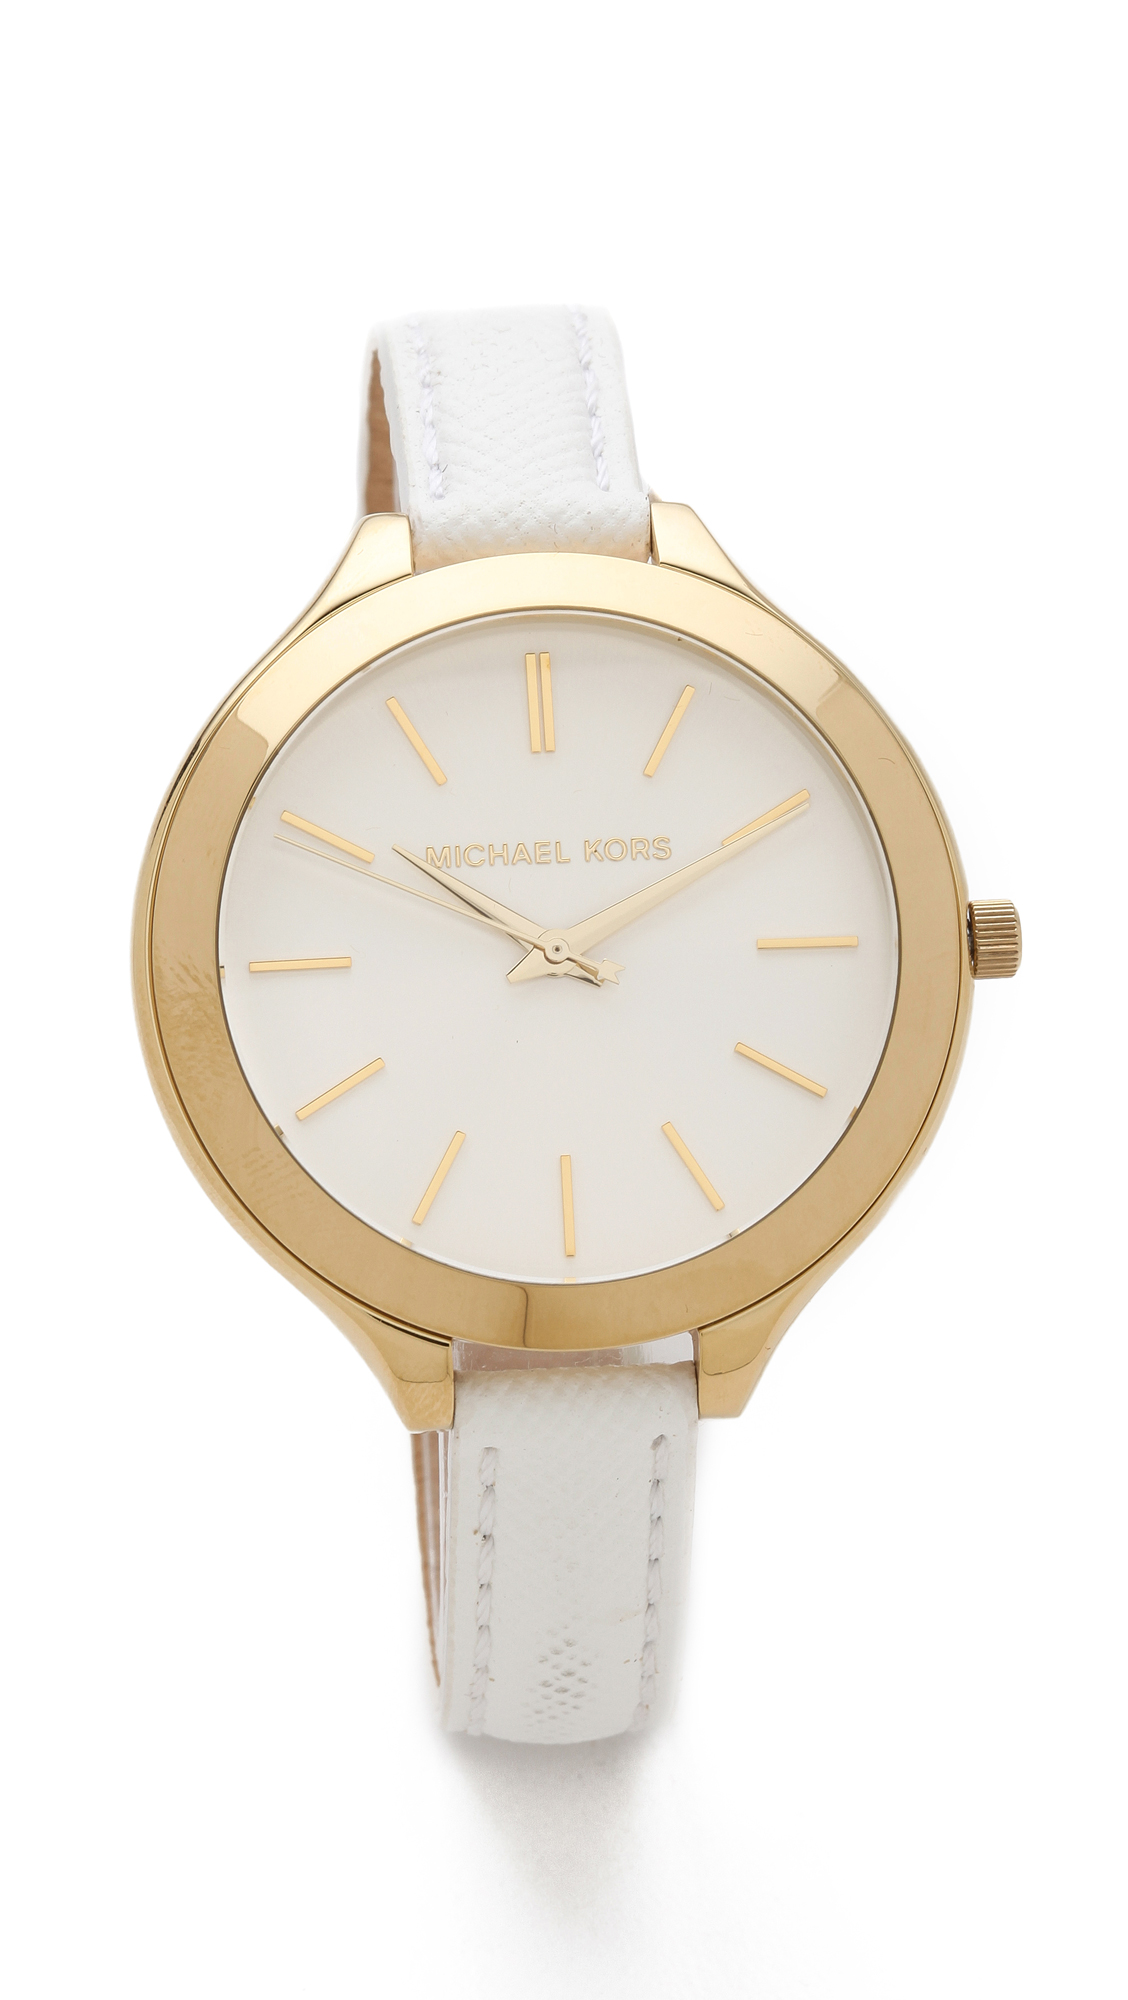 Michael kors leather slim runway watch in white lyst for Watches michael kors